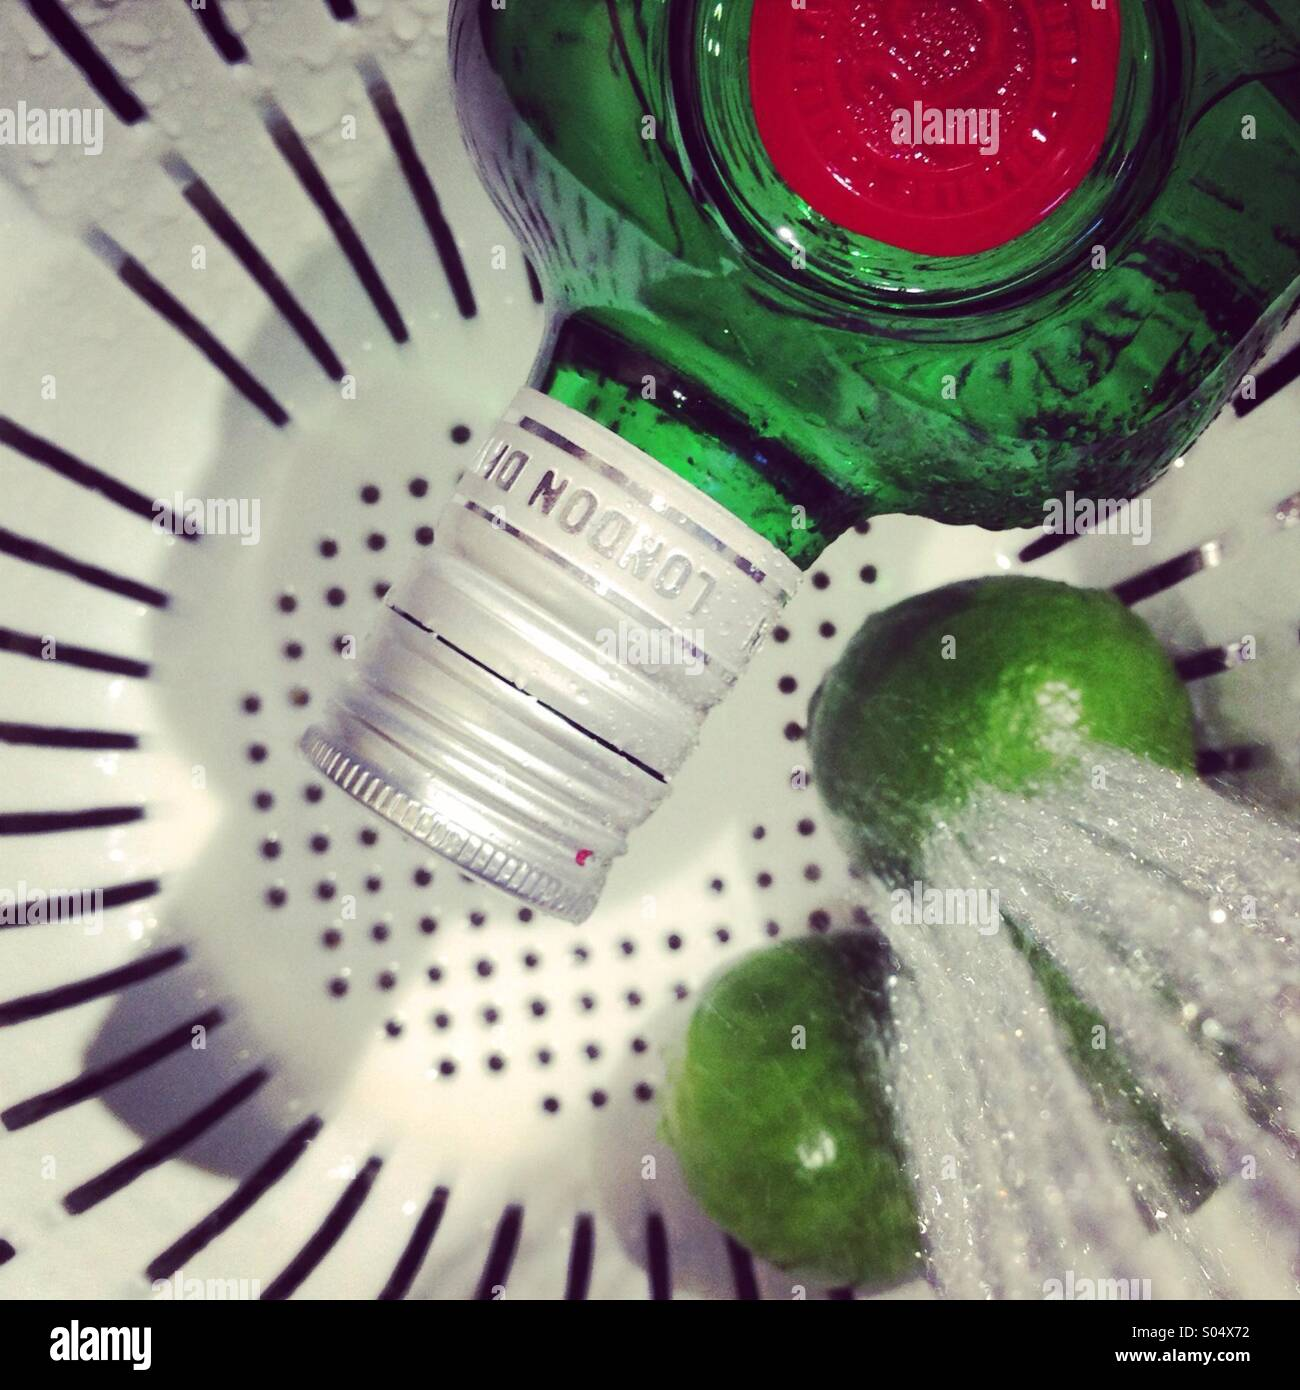 Green bottle of gin next to limes being washed with a stream if water while sitting in a colander. - Stock Image